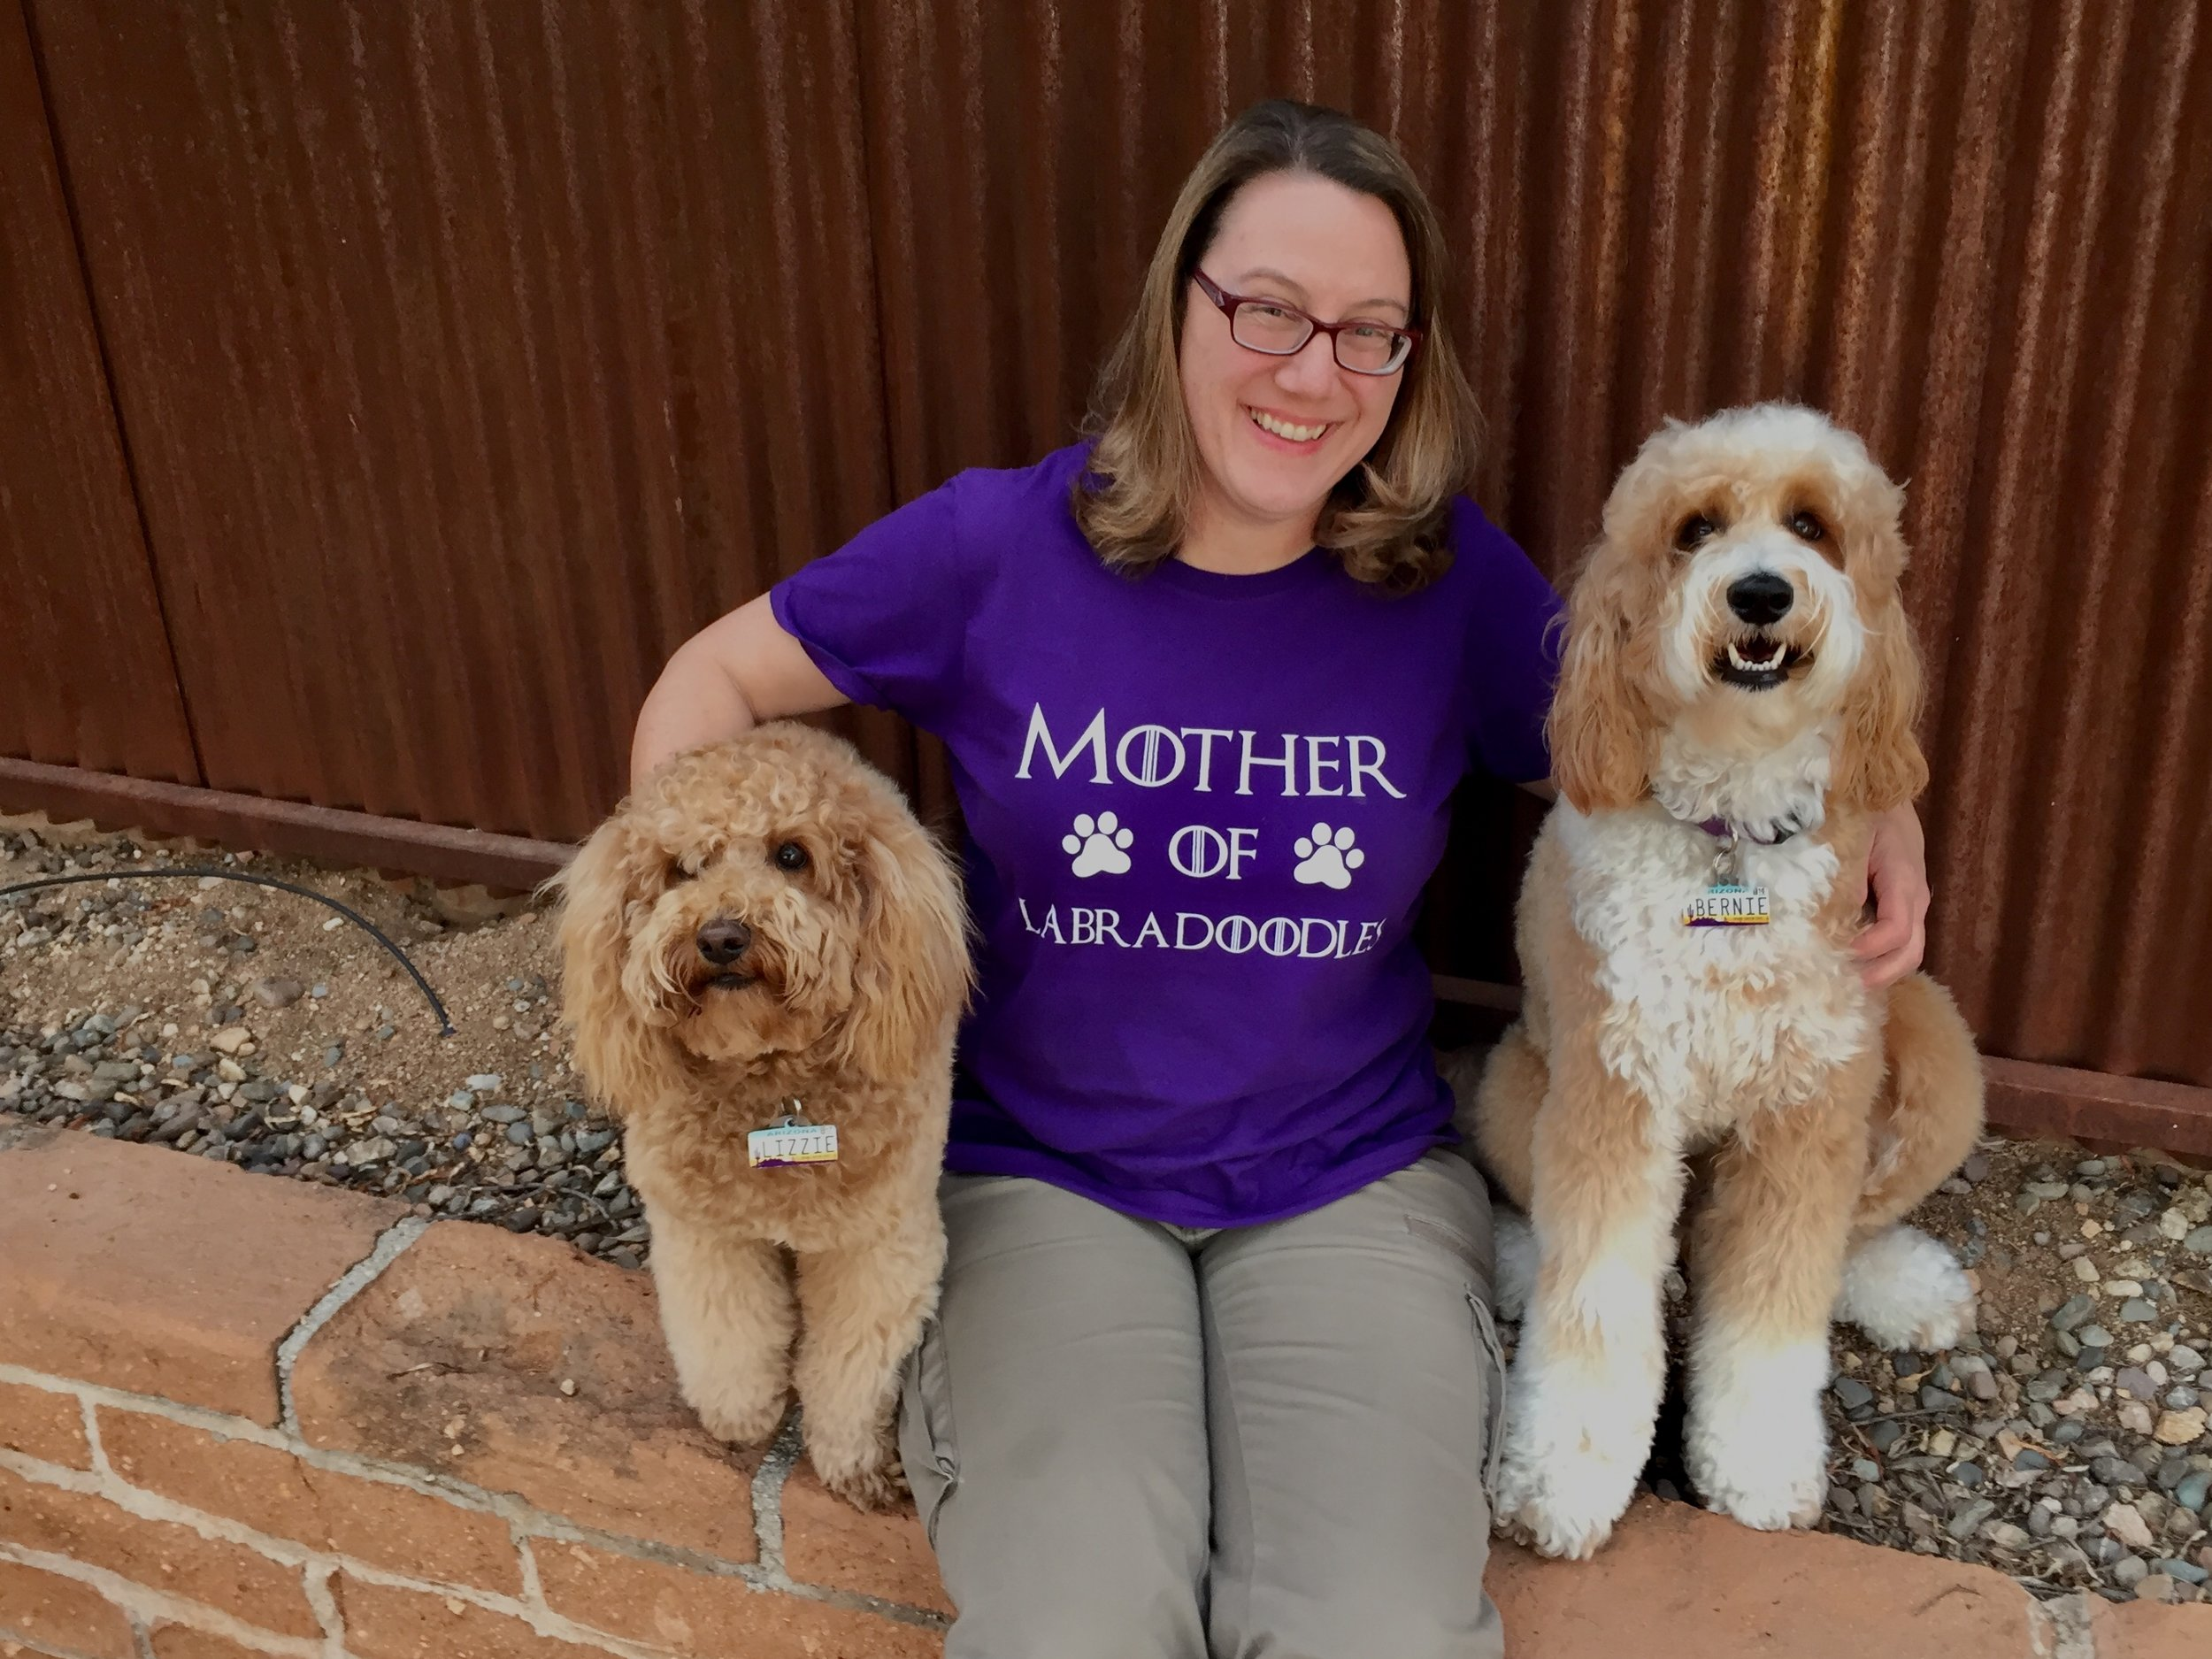 Lizzie and Bernie McSquare got me this Mother of Labradoodles purple t-shirt for Valentine's Day. Best Valentine I've ever received!